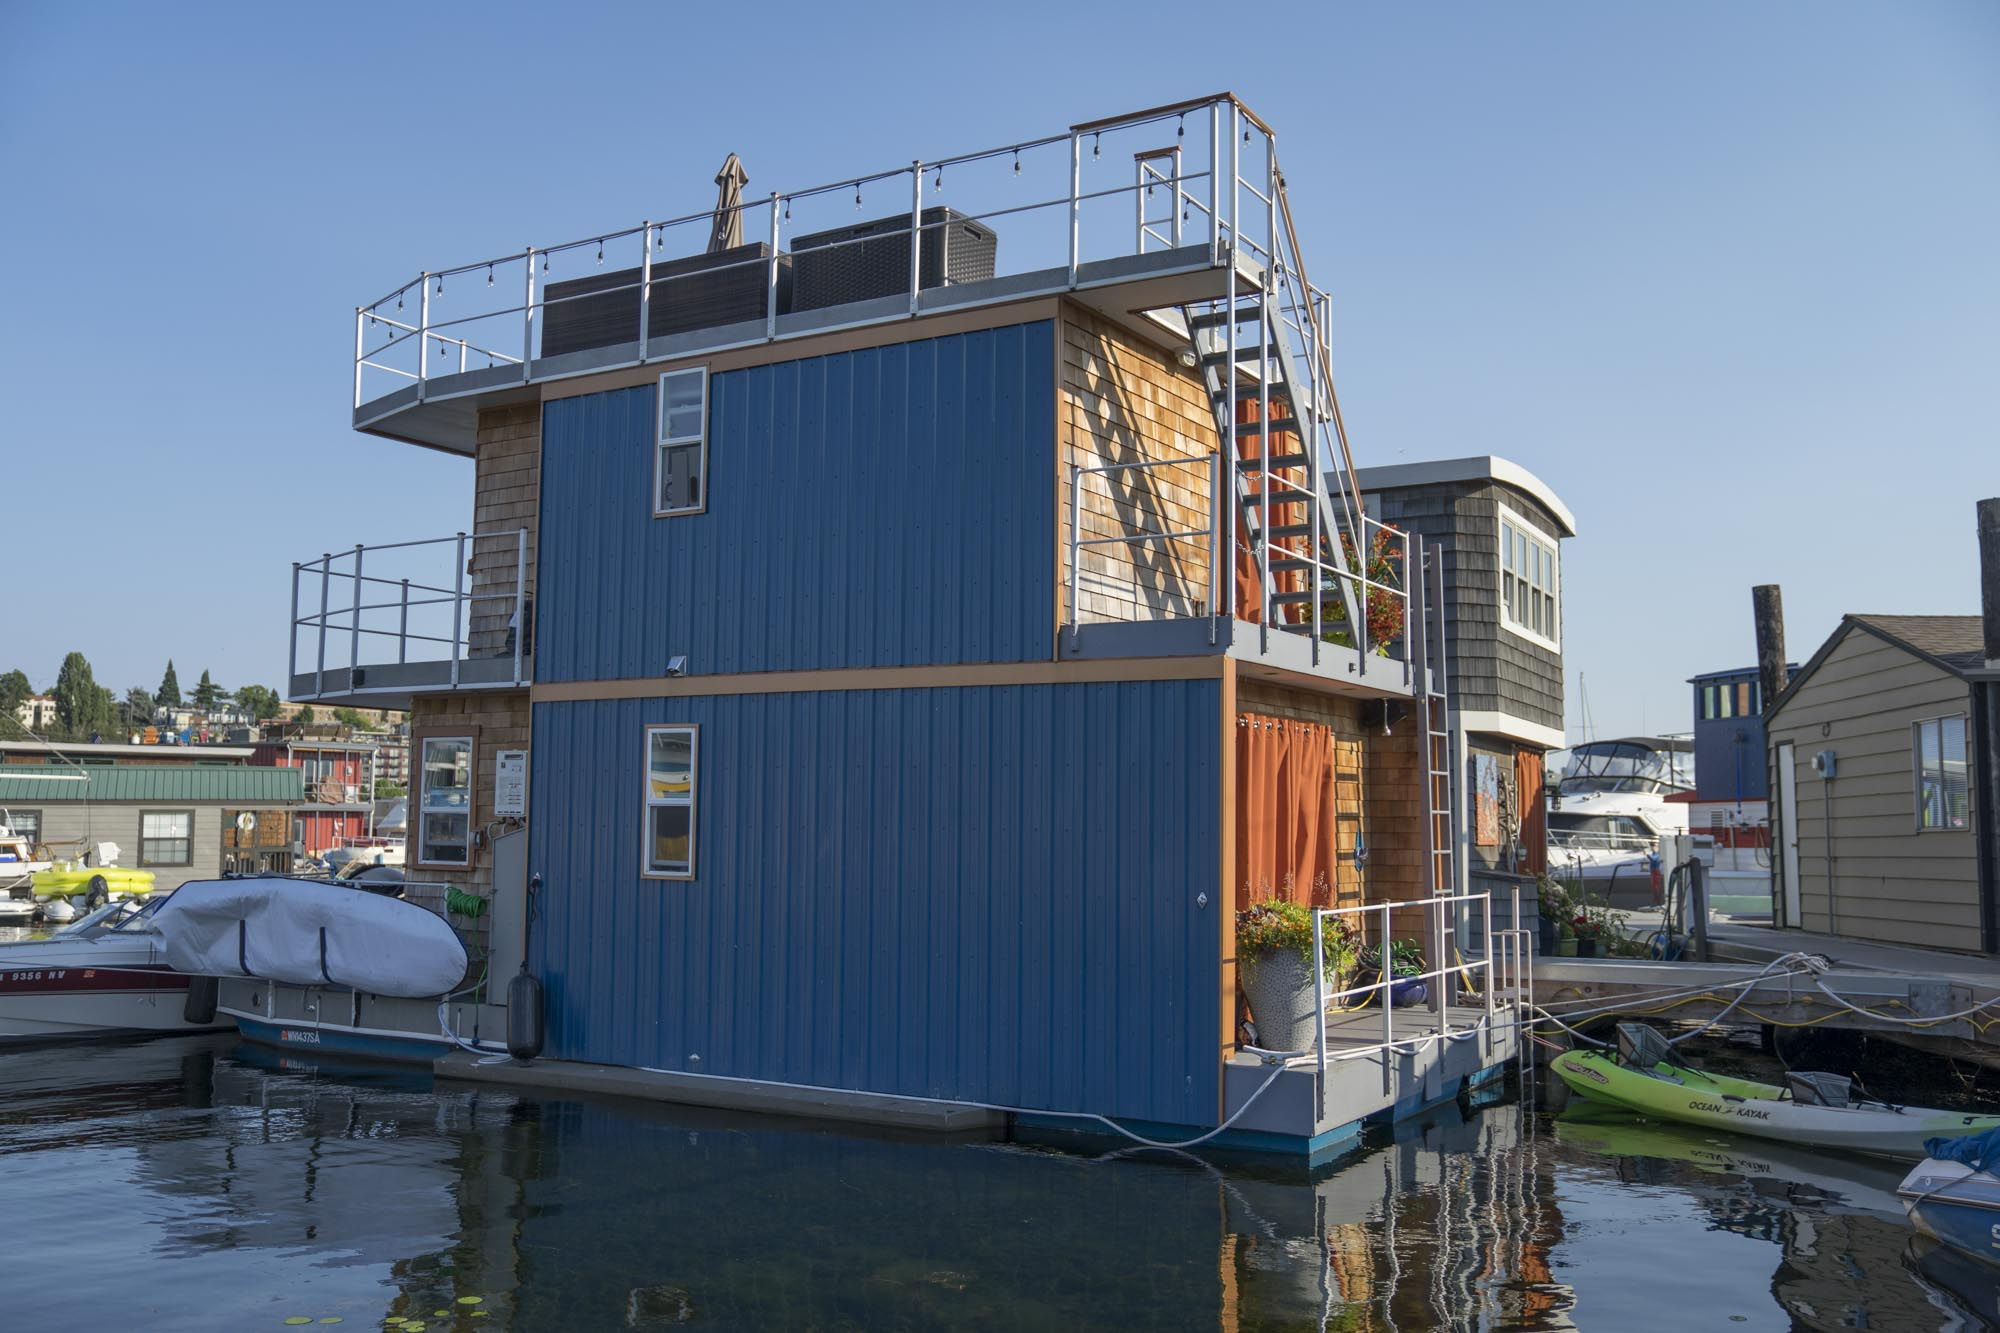 Another houseboat in Seattle.